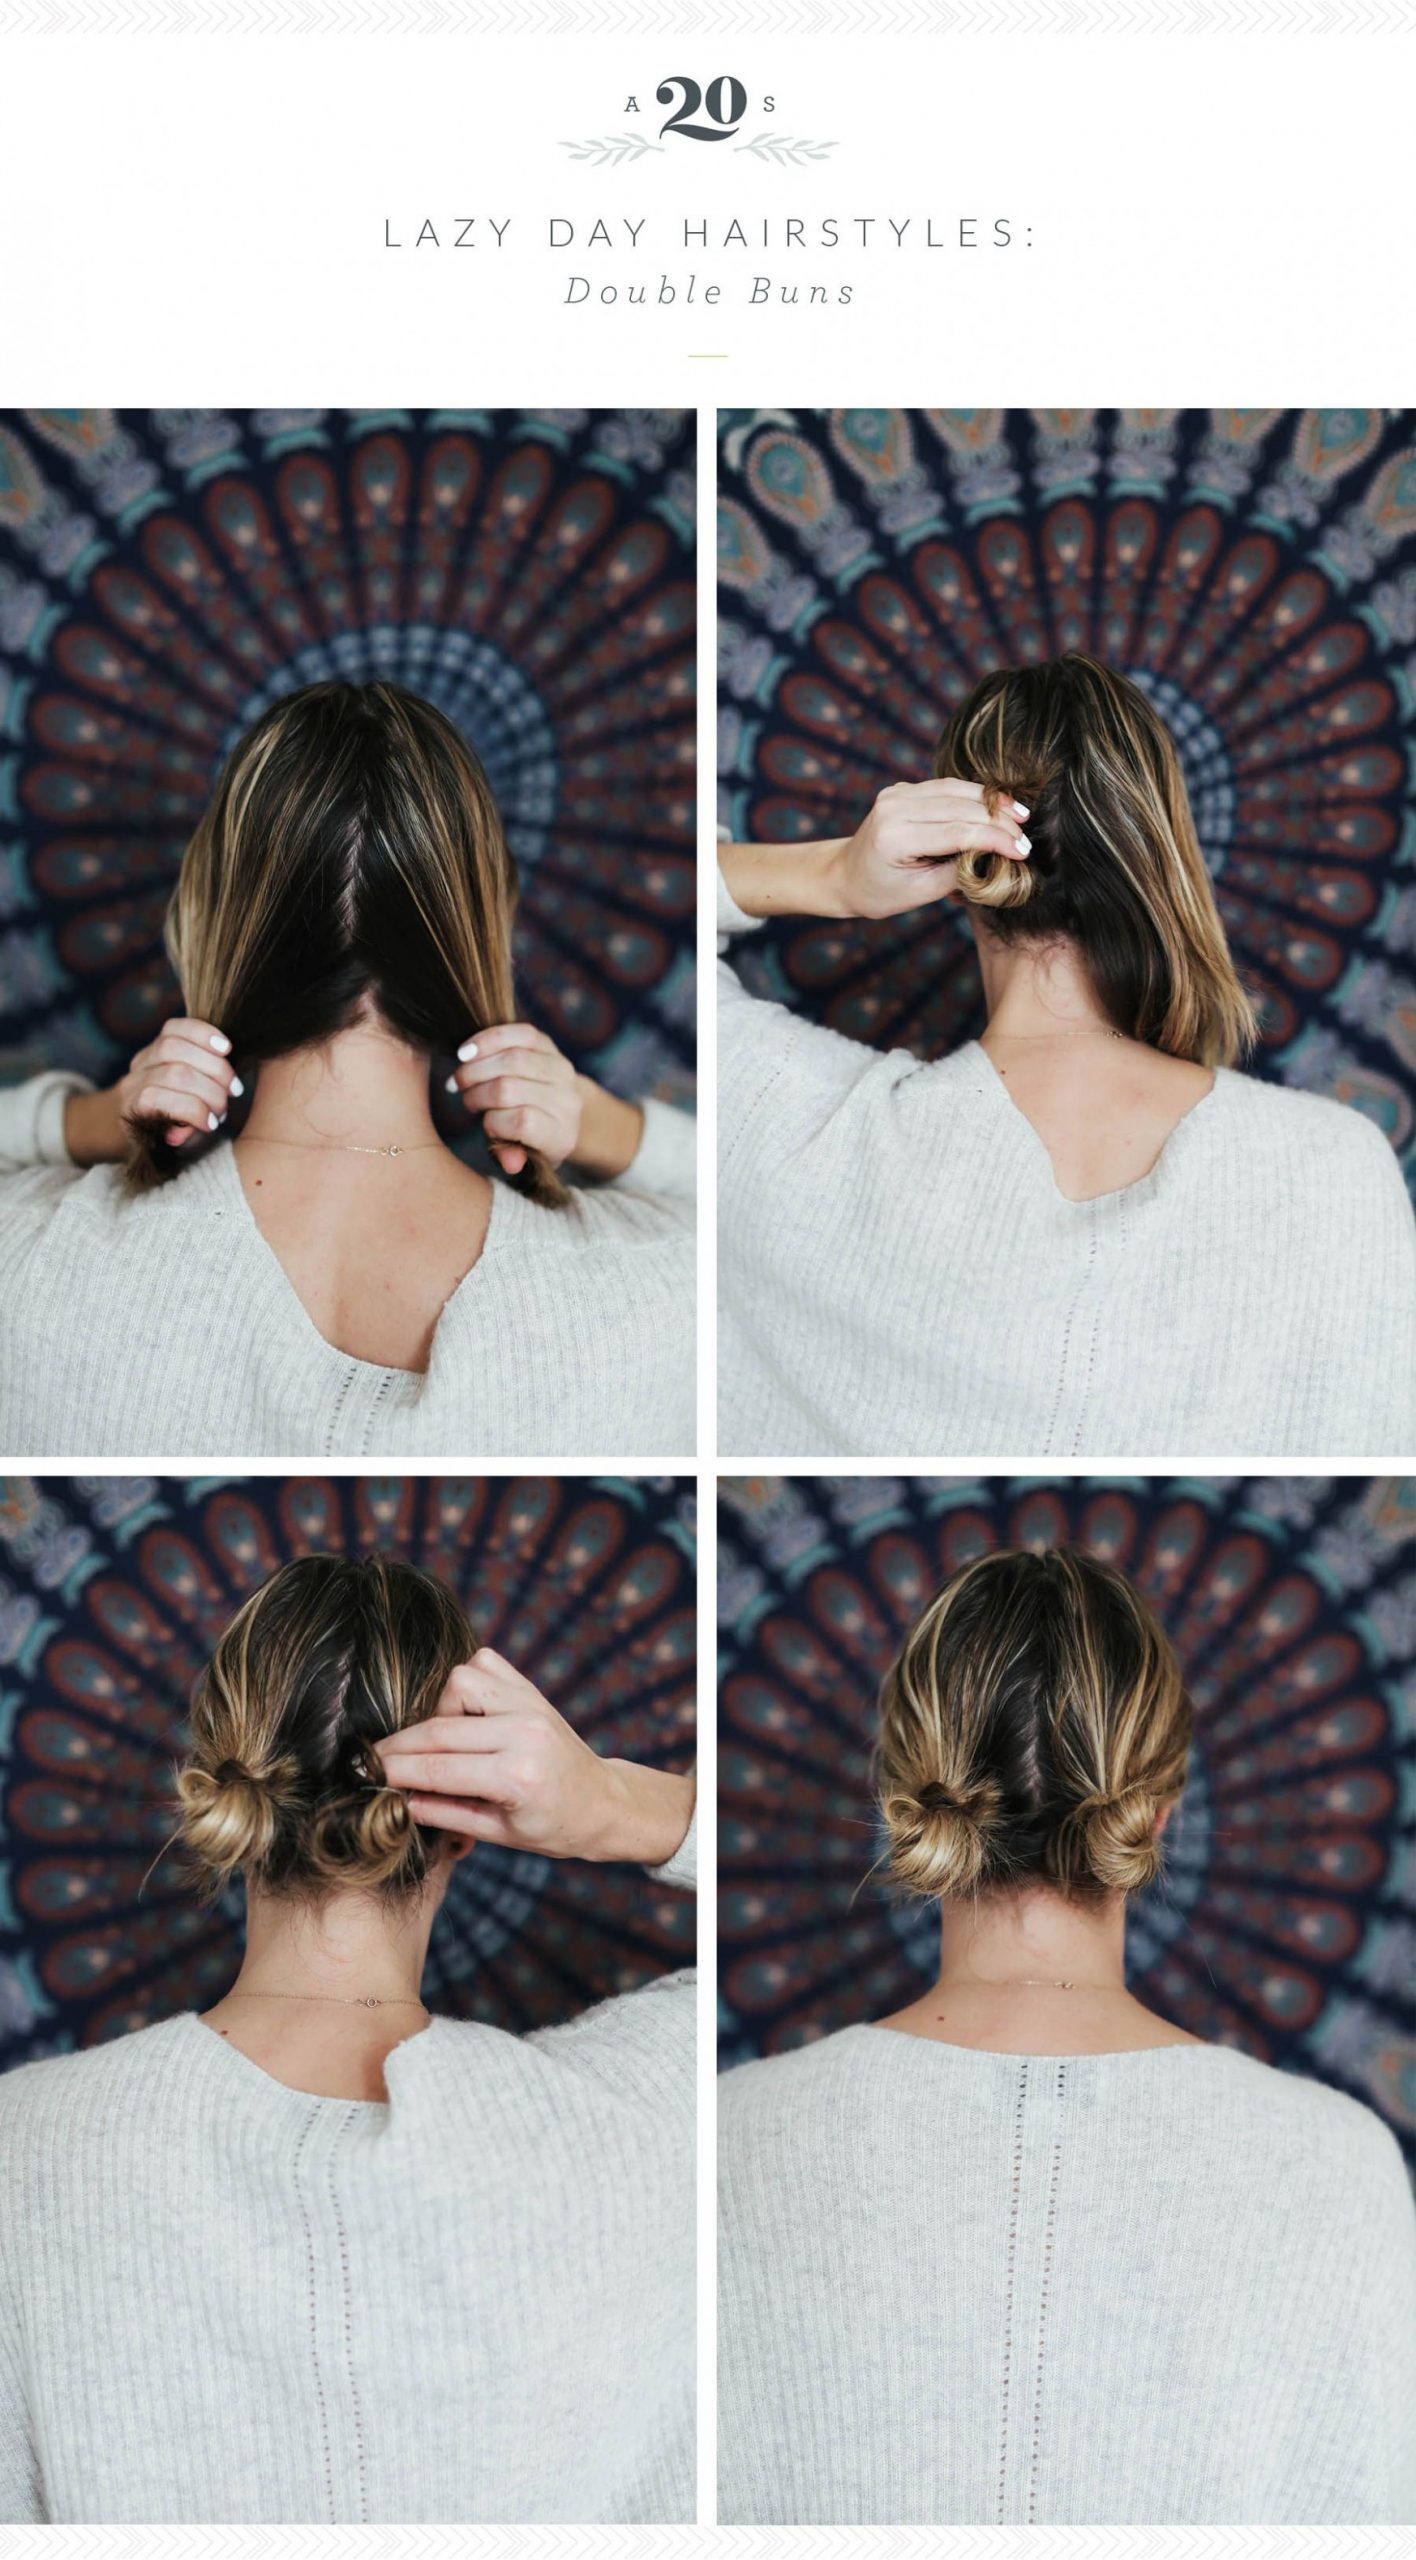 8 Easy Hairstyles For Lazy Days Cute Lazy Hairstyles, Lazy Girl Lazy Hairstyles For Short Hair